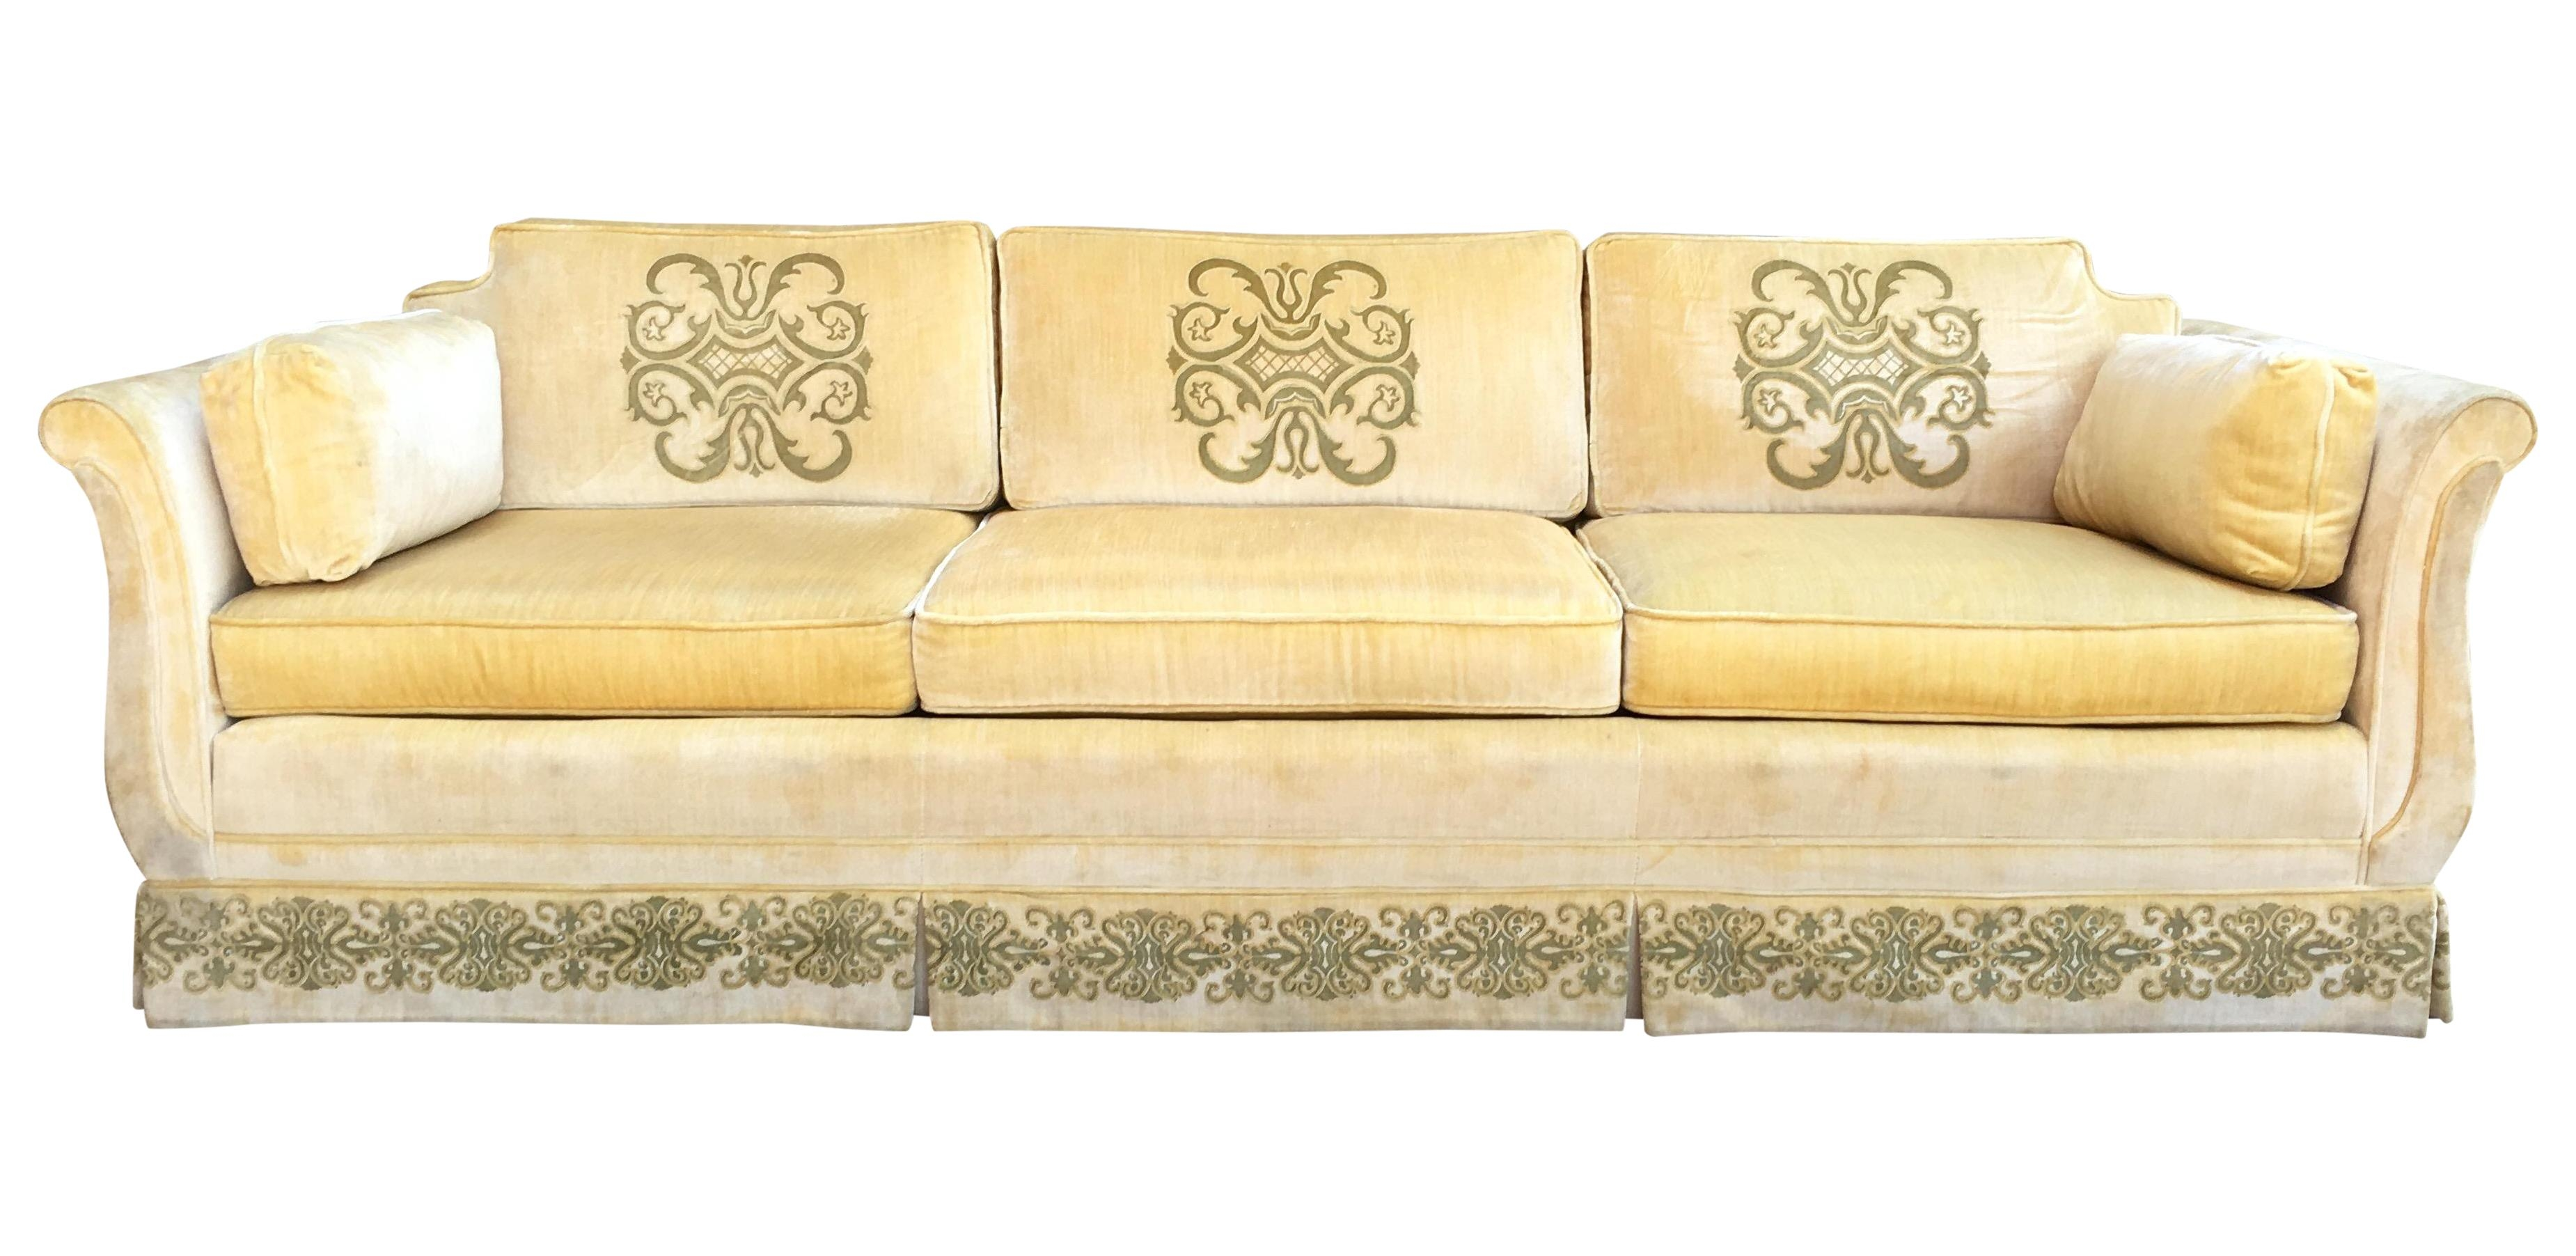 Highland House Sofa With Design Hd Gallery 19956 | Kengire Intended For Highland House Couches (Image 14 of 20)